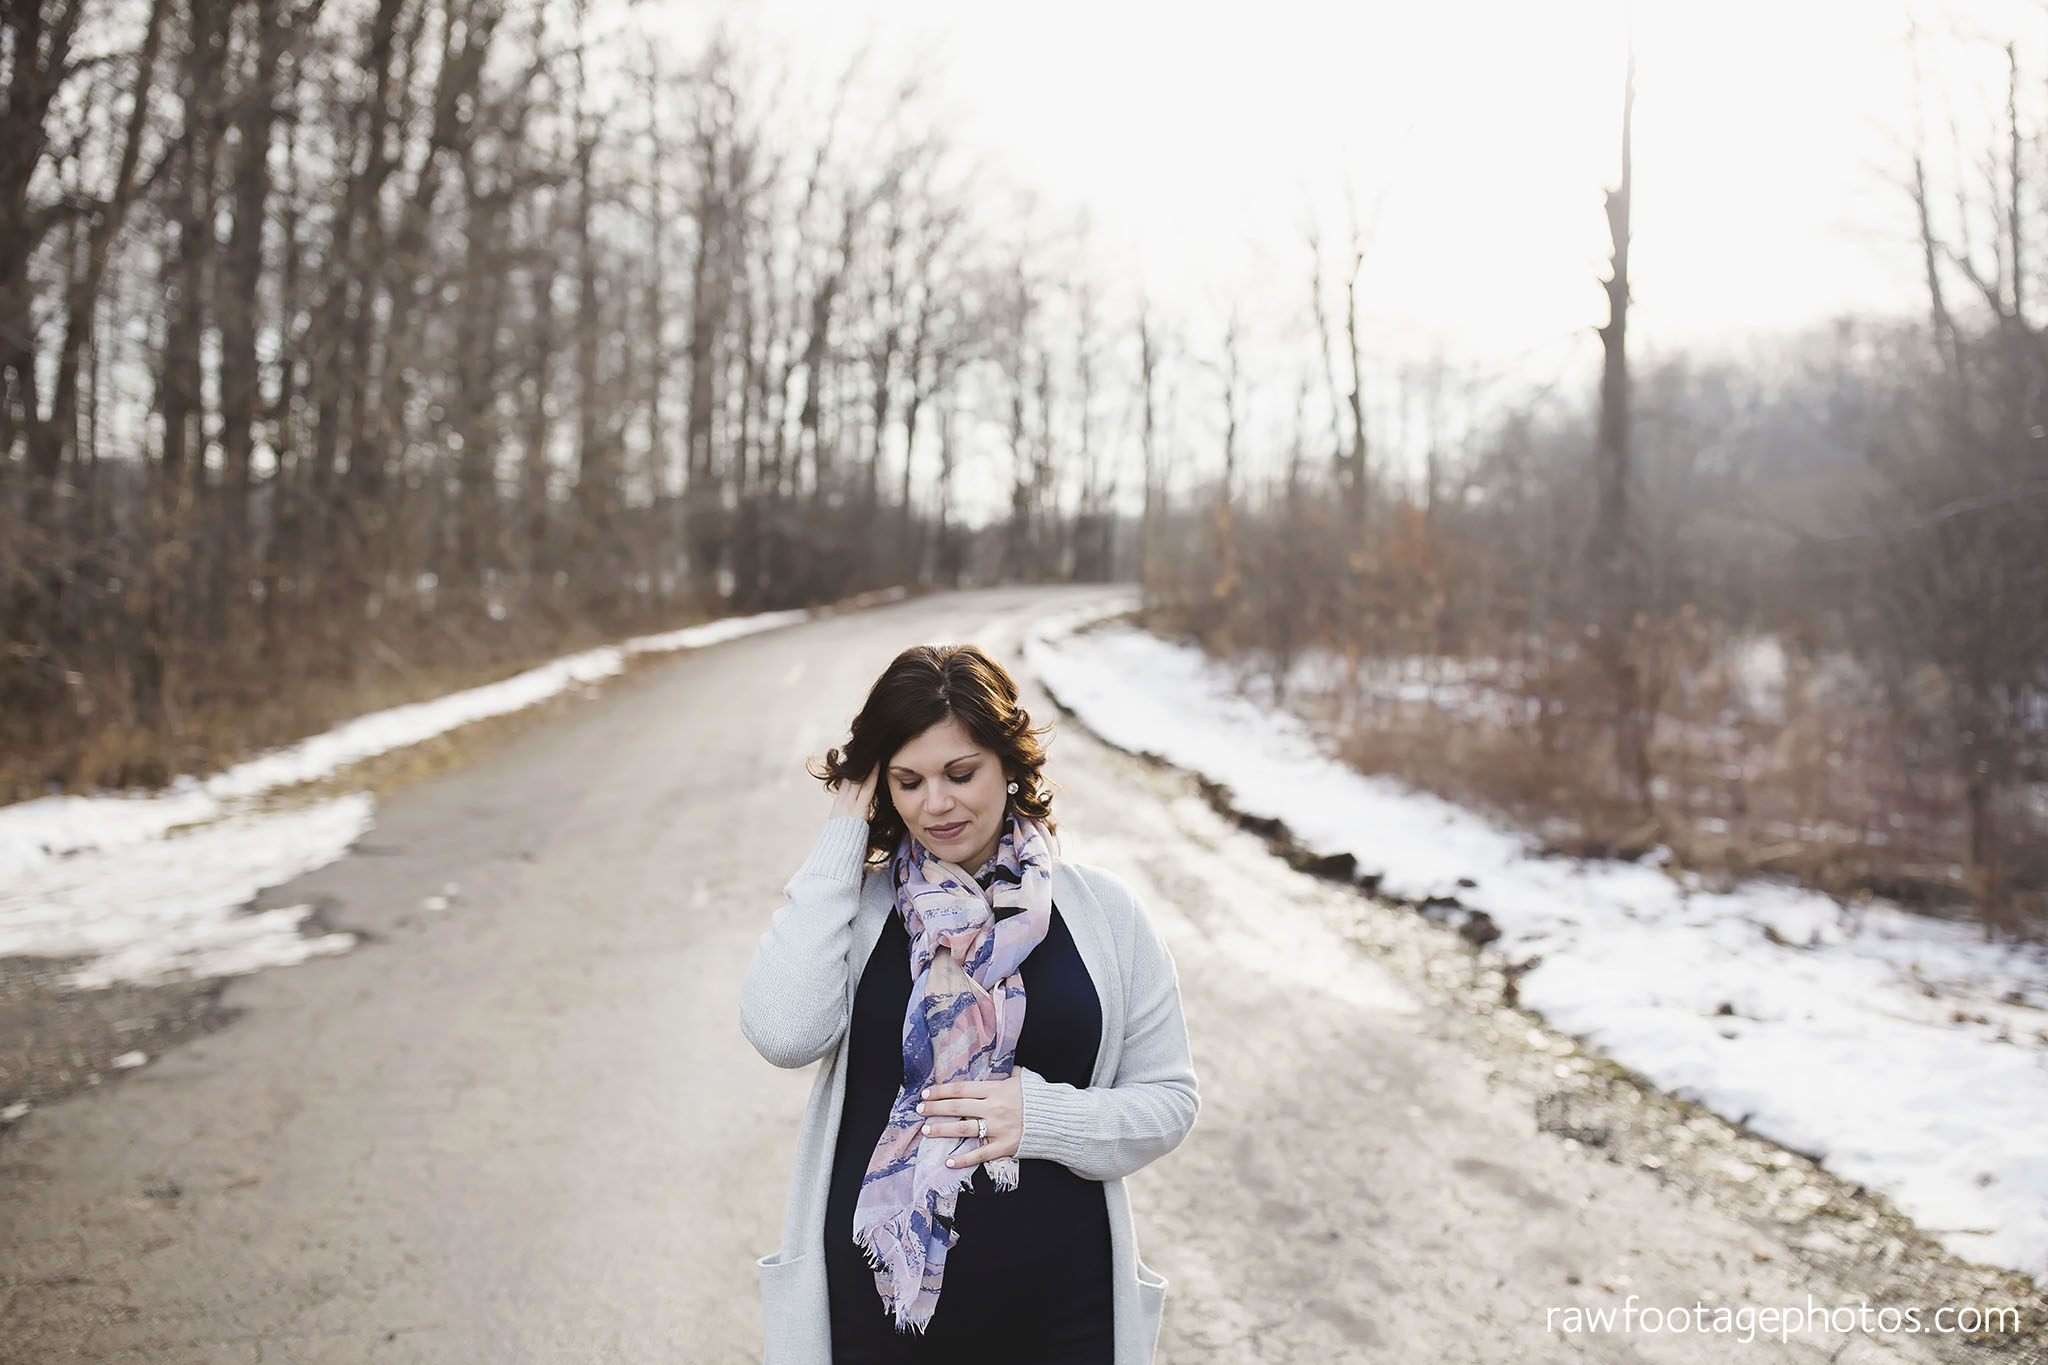 London_Ontario_Maternity_Photographer-Maternity_Session-Family_Photography-Winter_Photos-Raw_Footage_Photography013.jpg